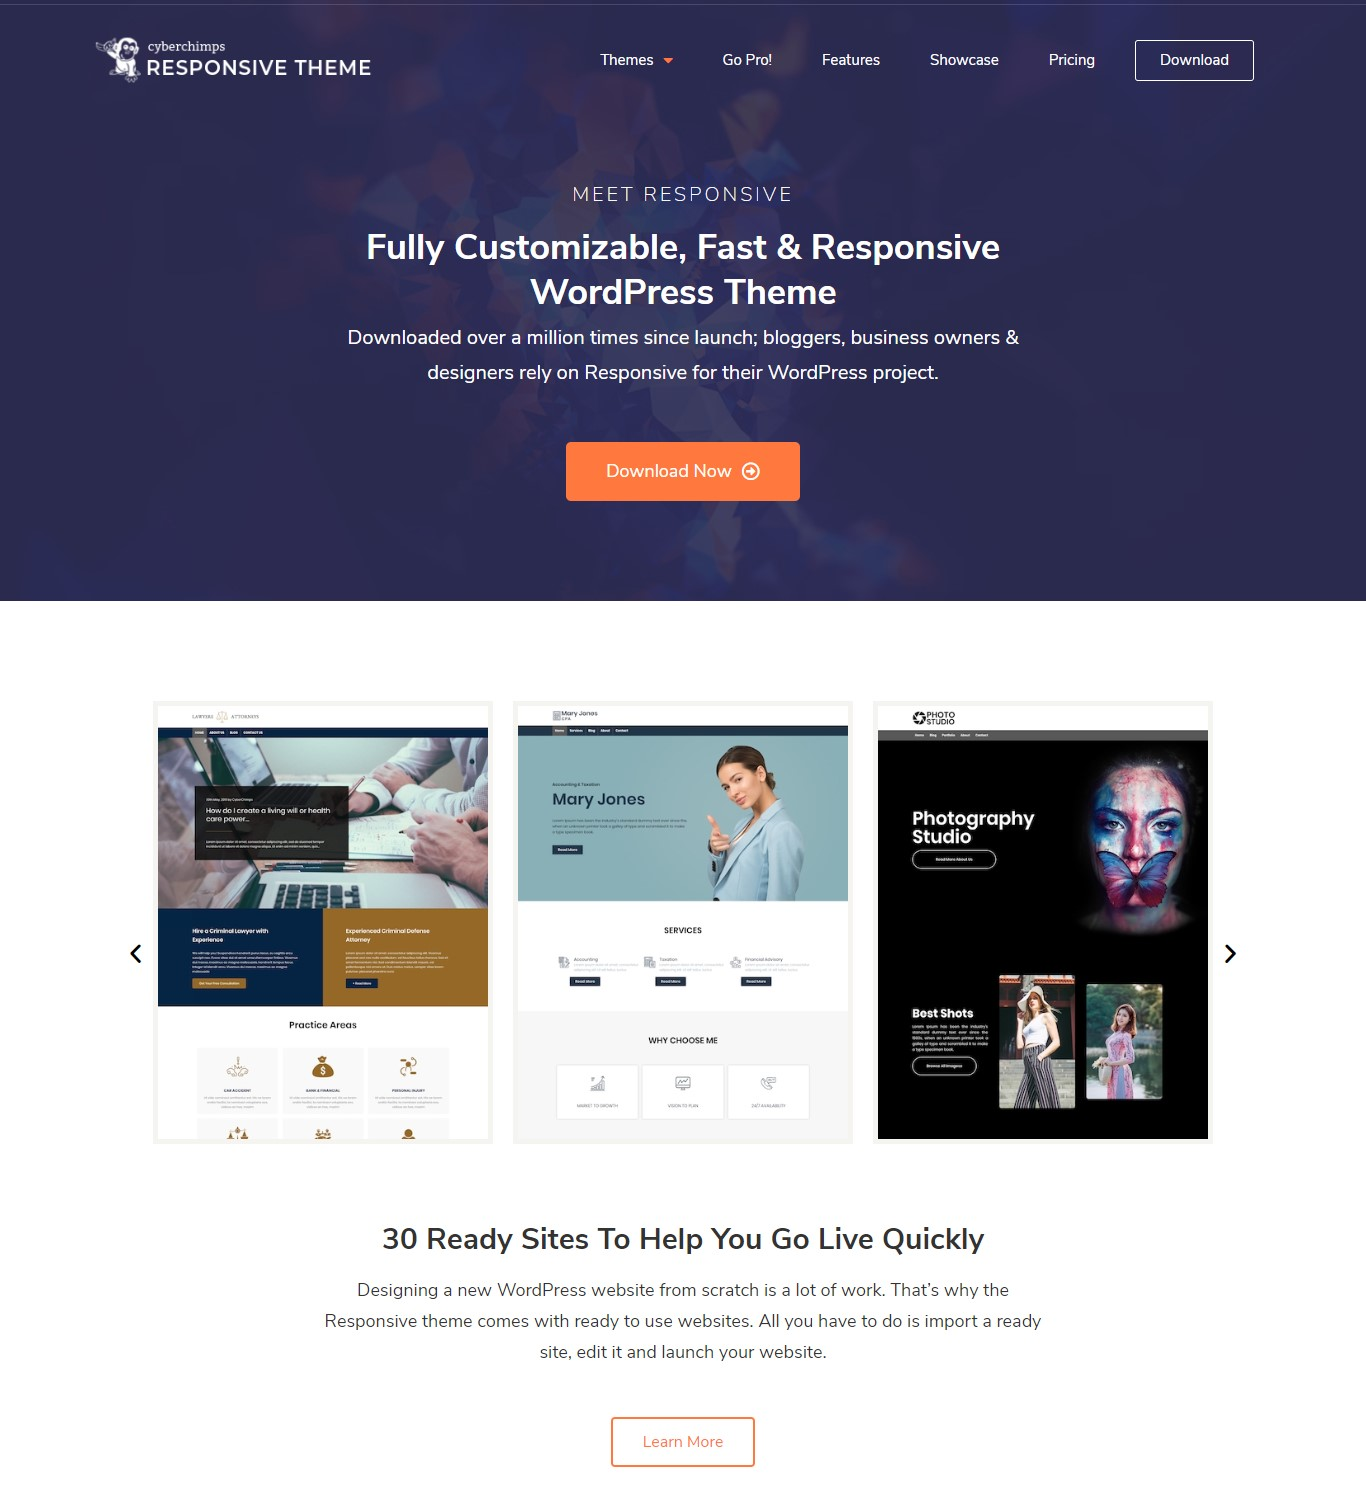 Cyberchimps Responsive theme